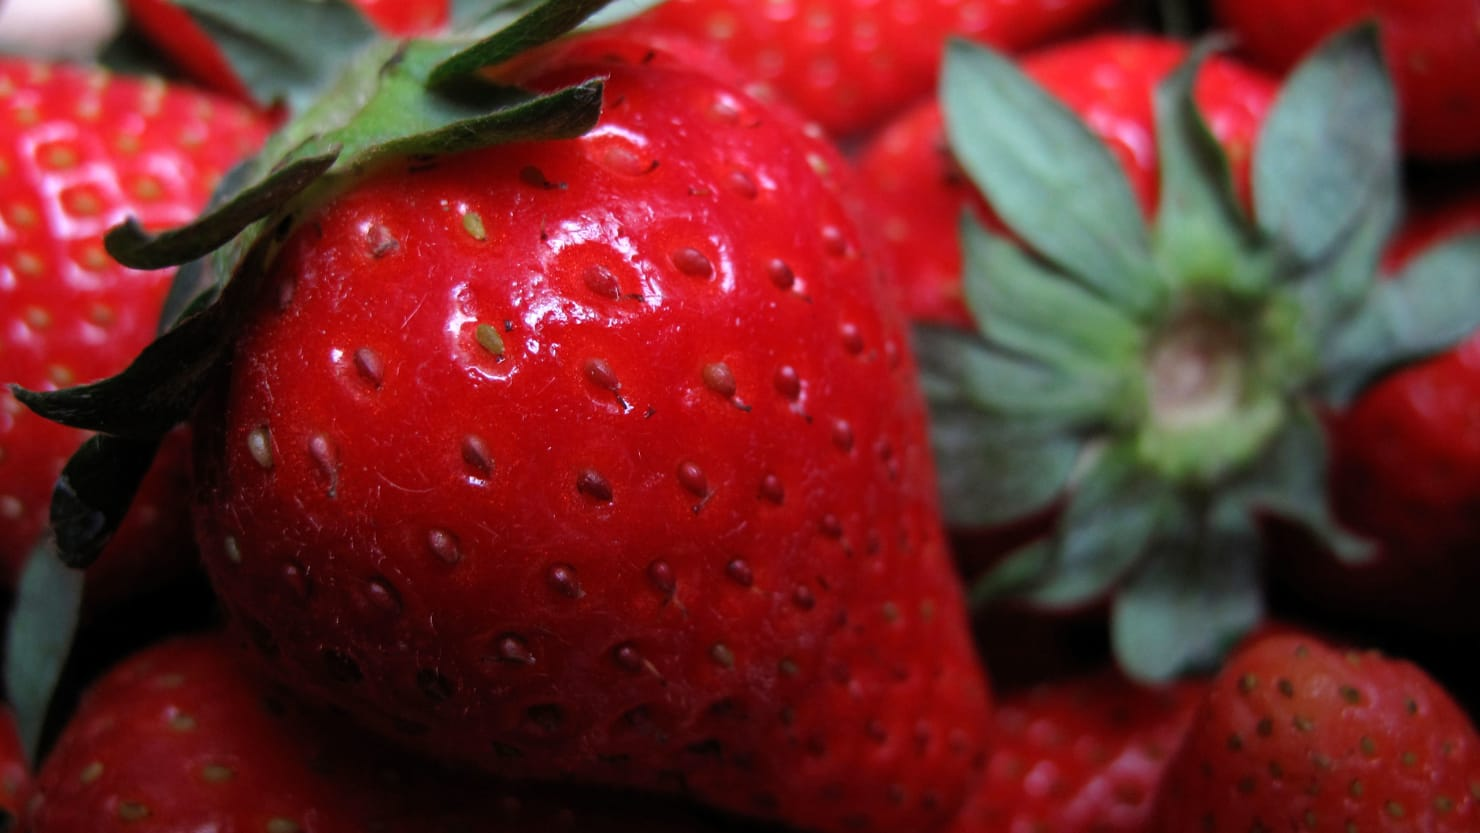 Woman Arrested in Australia for Allegedly Hiding Needles in Strawberries